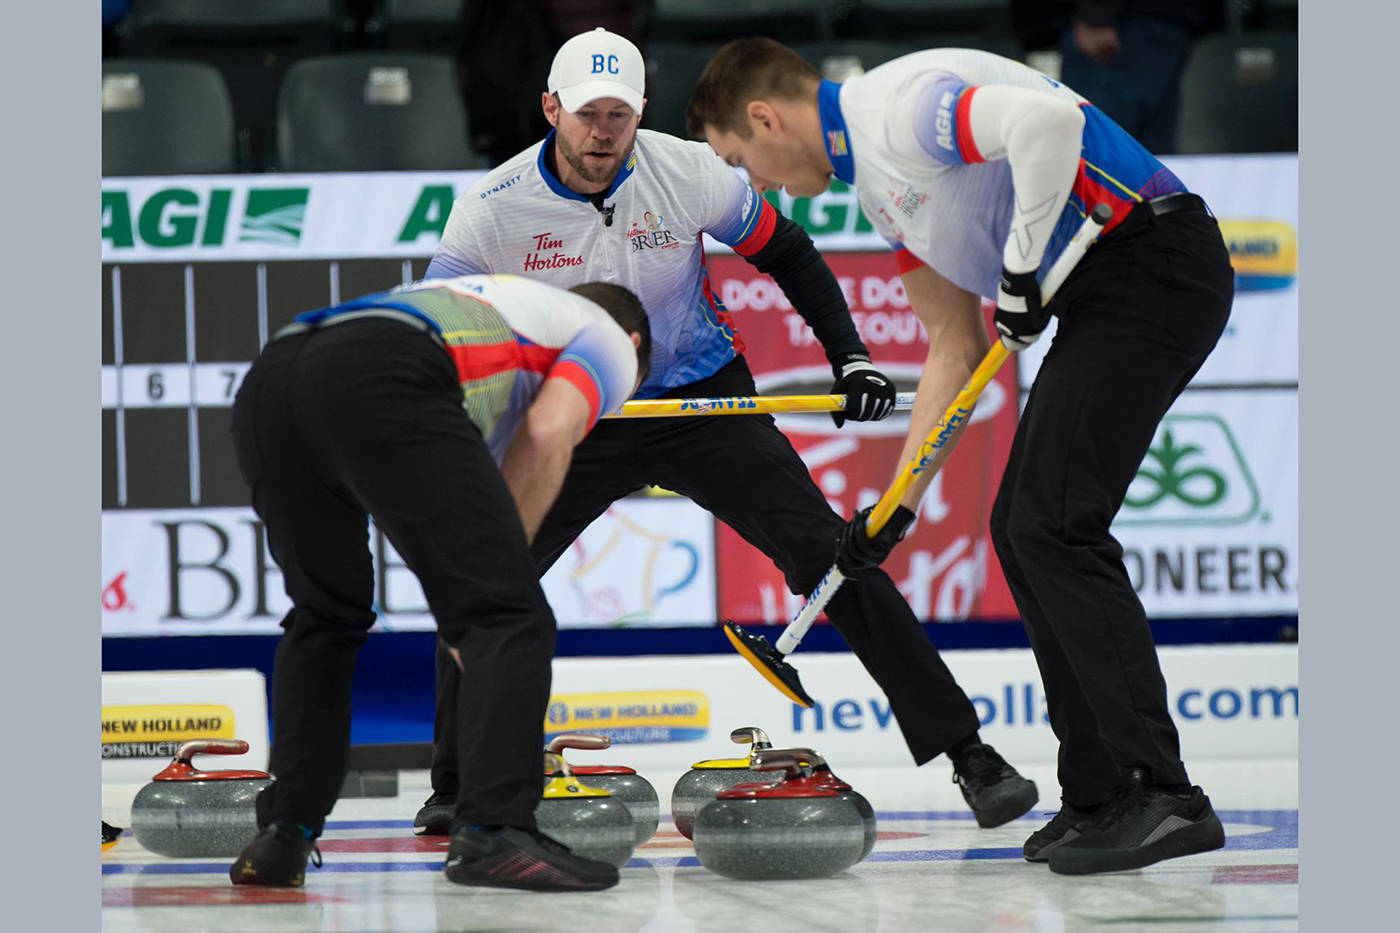 Vernon's Jim Cotter (centre) and Kelowna's Rick Sawatsky (left) and Andrew Nerpin follow a Steve Laycock shot into the house at the 2021 Tim Hortons Brier Canadian men's curling championships in Calgary. Team B.C. fell to 1-4 Tuesday, March 9, with a 4-3 loss to Wayne Middaugh's Ontario Wild Card 3 foursome. (Michael Burns Photography)